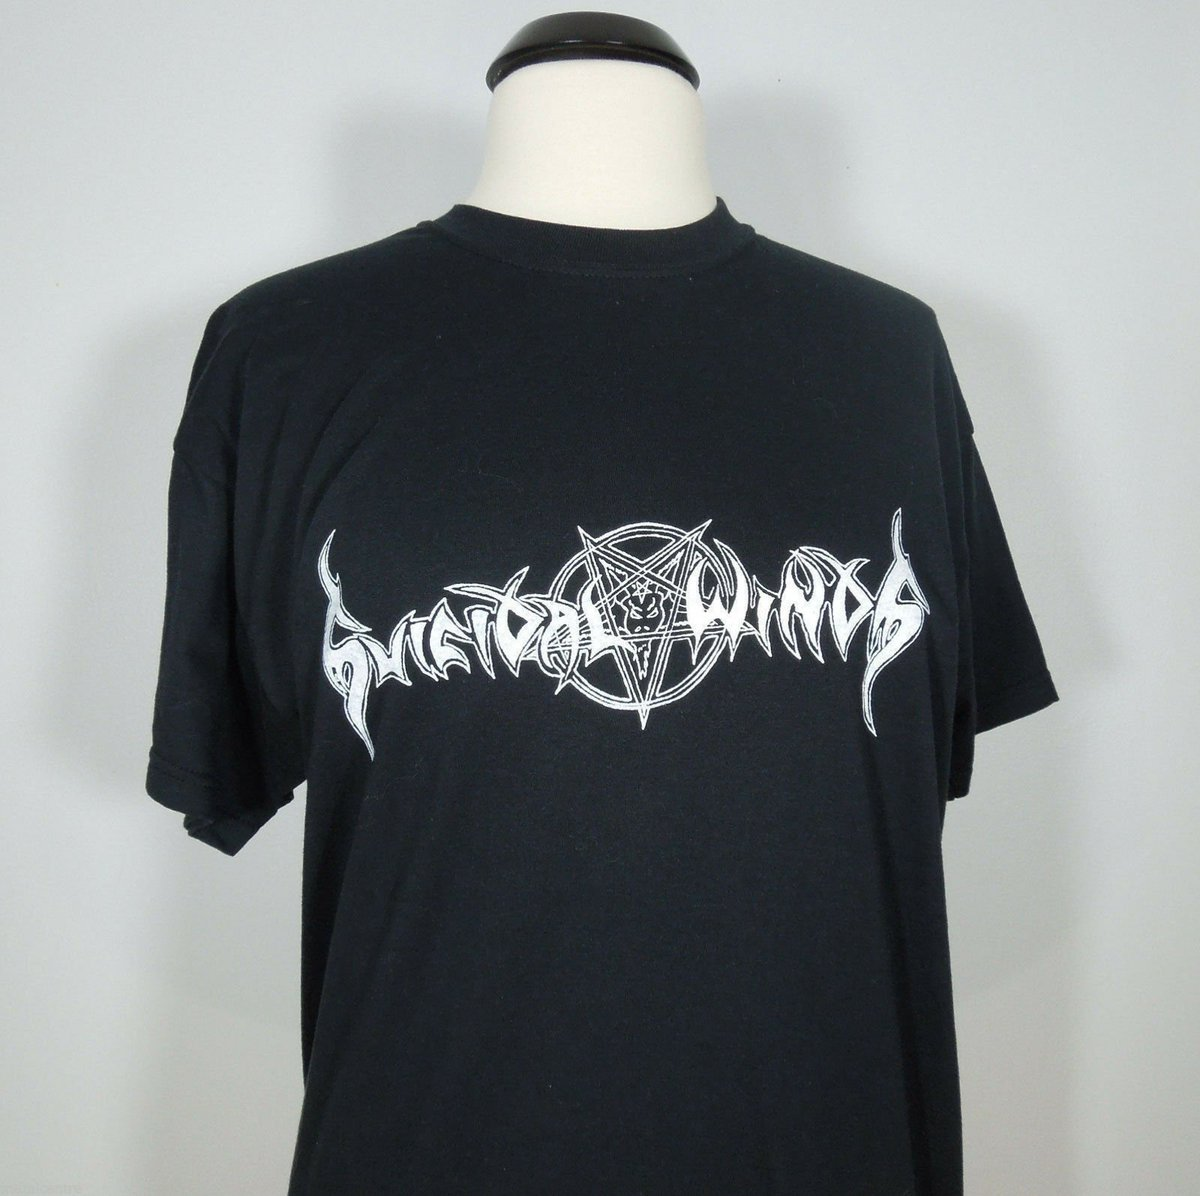 Check out https://ebay.to/2JP6wGN  SUICIDAL WINDS Band Logo Black T-Shirt (No Colours Records) Men's (NEW)   http://www.shop.metalcentre.com    #SUICIDALWINDS #Band #Sweden #Logo #Black #TShirt #NoColoursRecords #Mens #NEW #ThrashMetal #BlackMetal #MetalCentre #VersalCentre #CDs #Patchespic.twitter.com/B80pWkaJb8